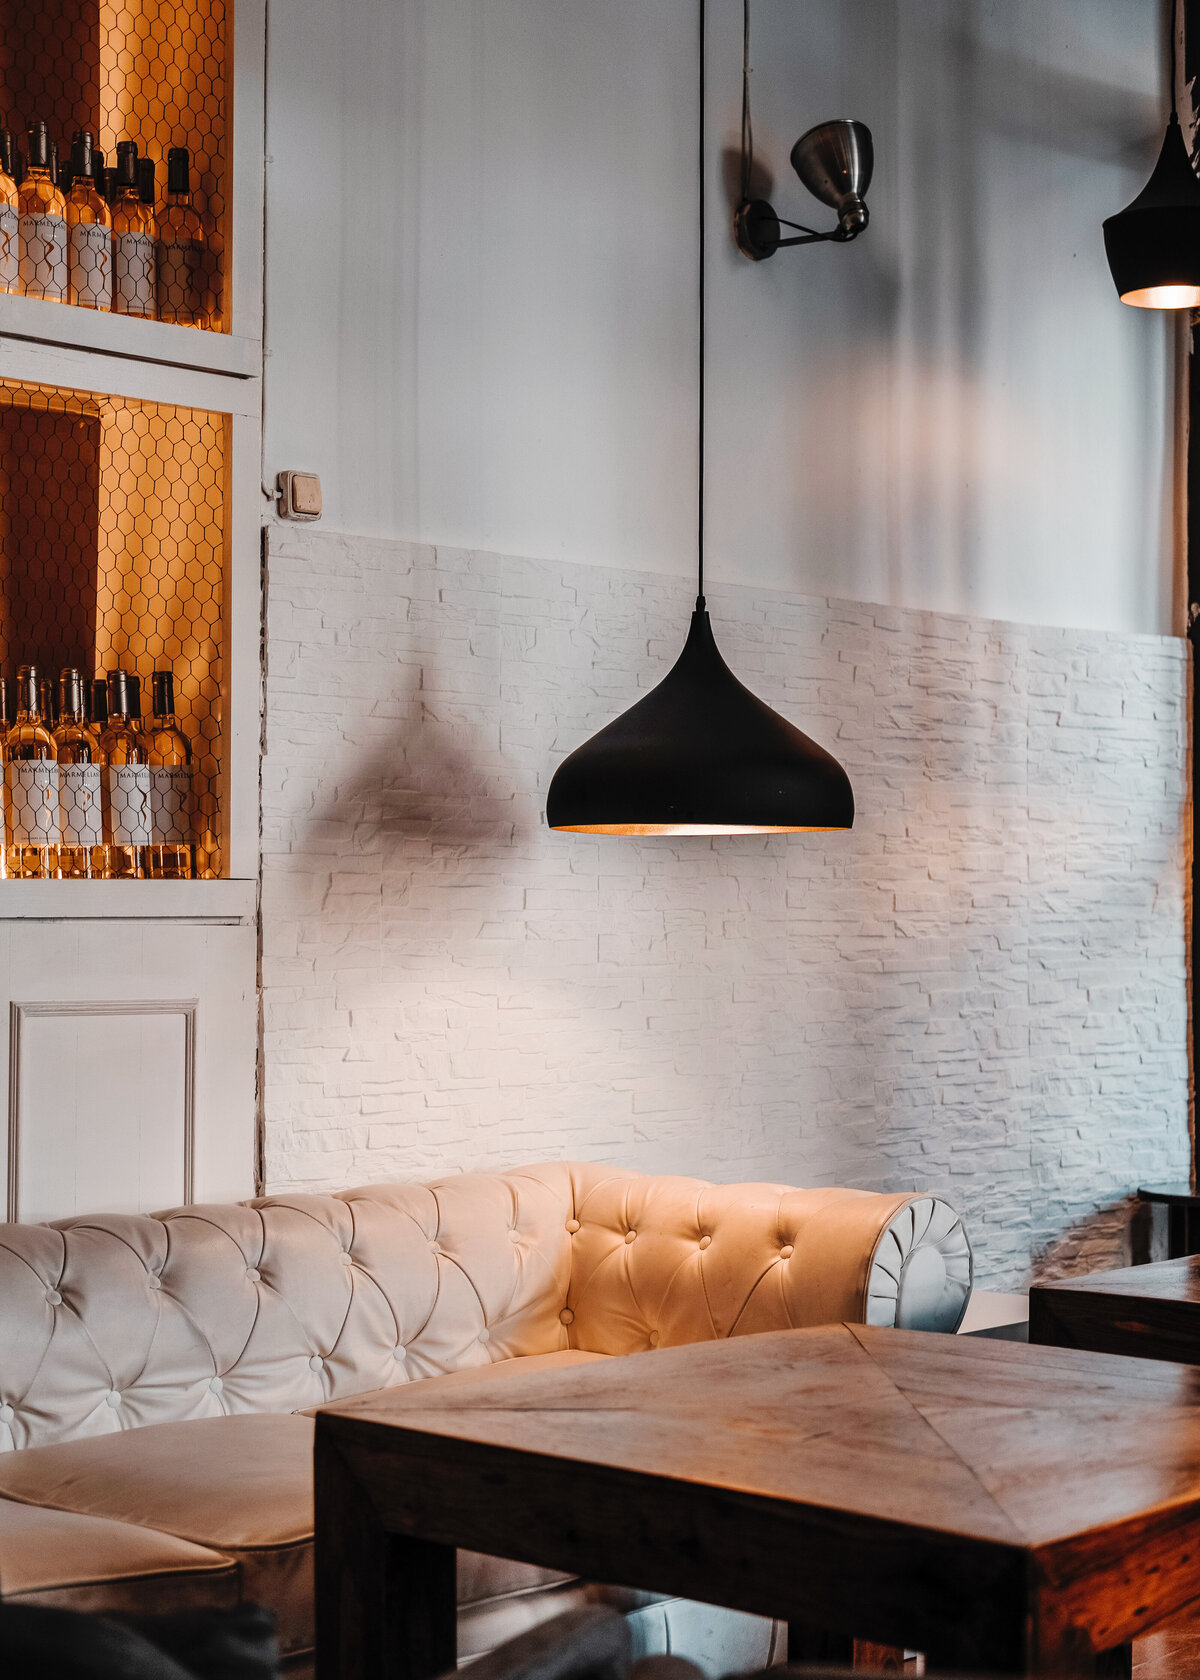 A restaurant is designed with a white chesterfield and a sleek black pendant light.